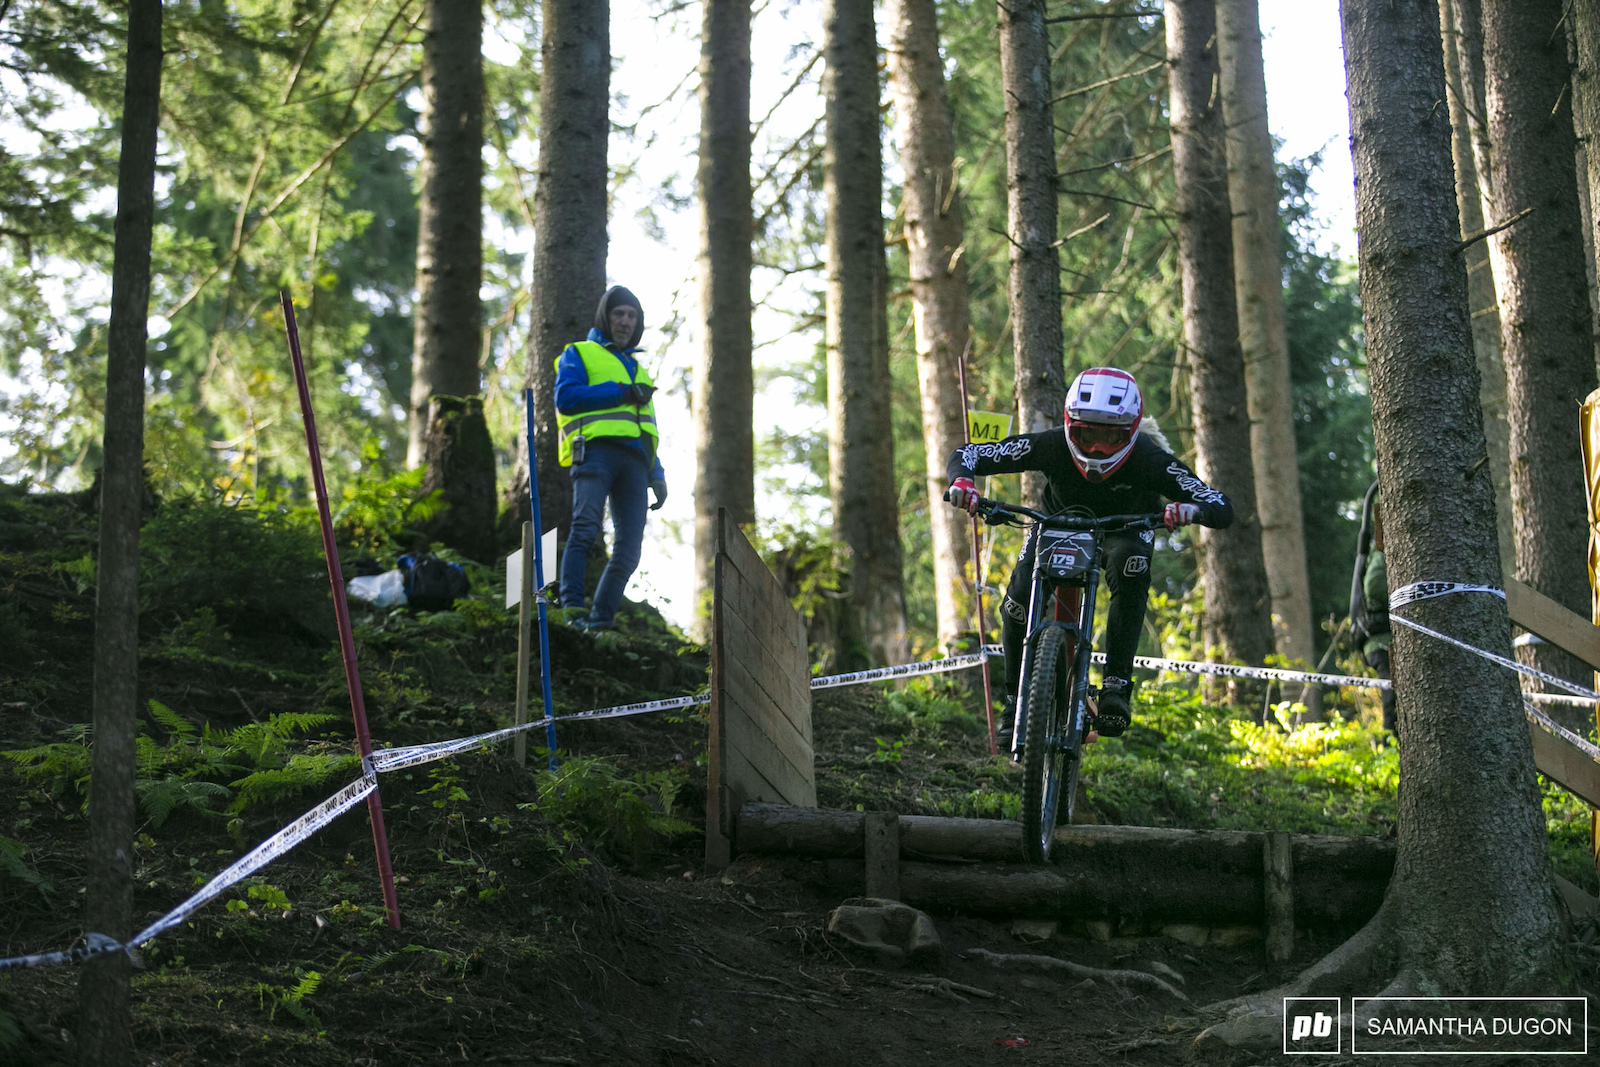 Sophie Gutohrle in full attack mode at the top of the course.